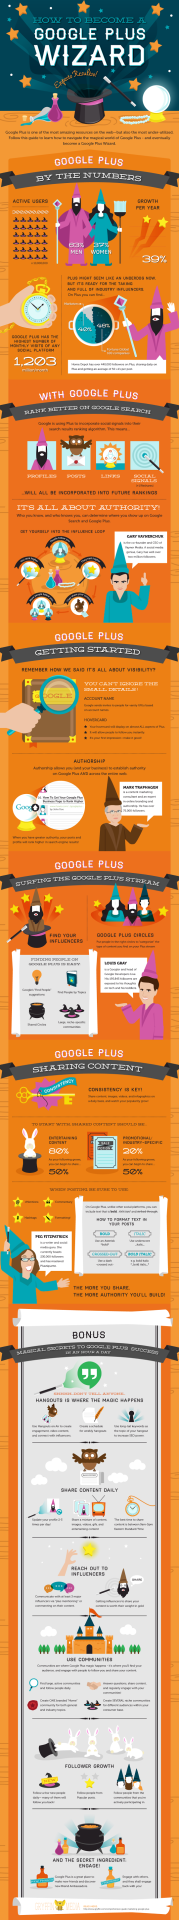 #googleplus  wizard  pin it:  http://www.pinterest.com/pin/328481366543998179/    ——-   http://weproms.com/services/social-media-marketing.html    http://click-to-read-mo.re/p/6zvQ